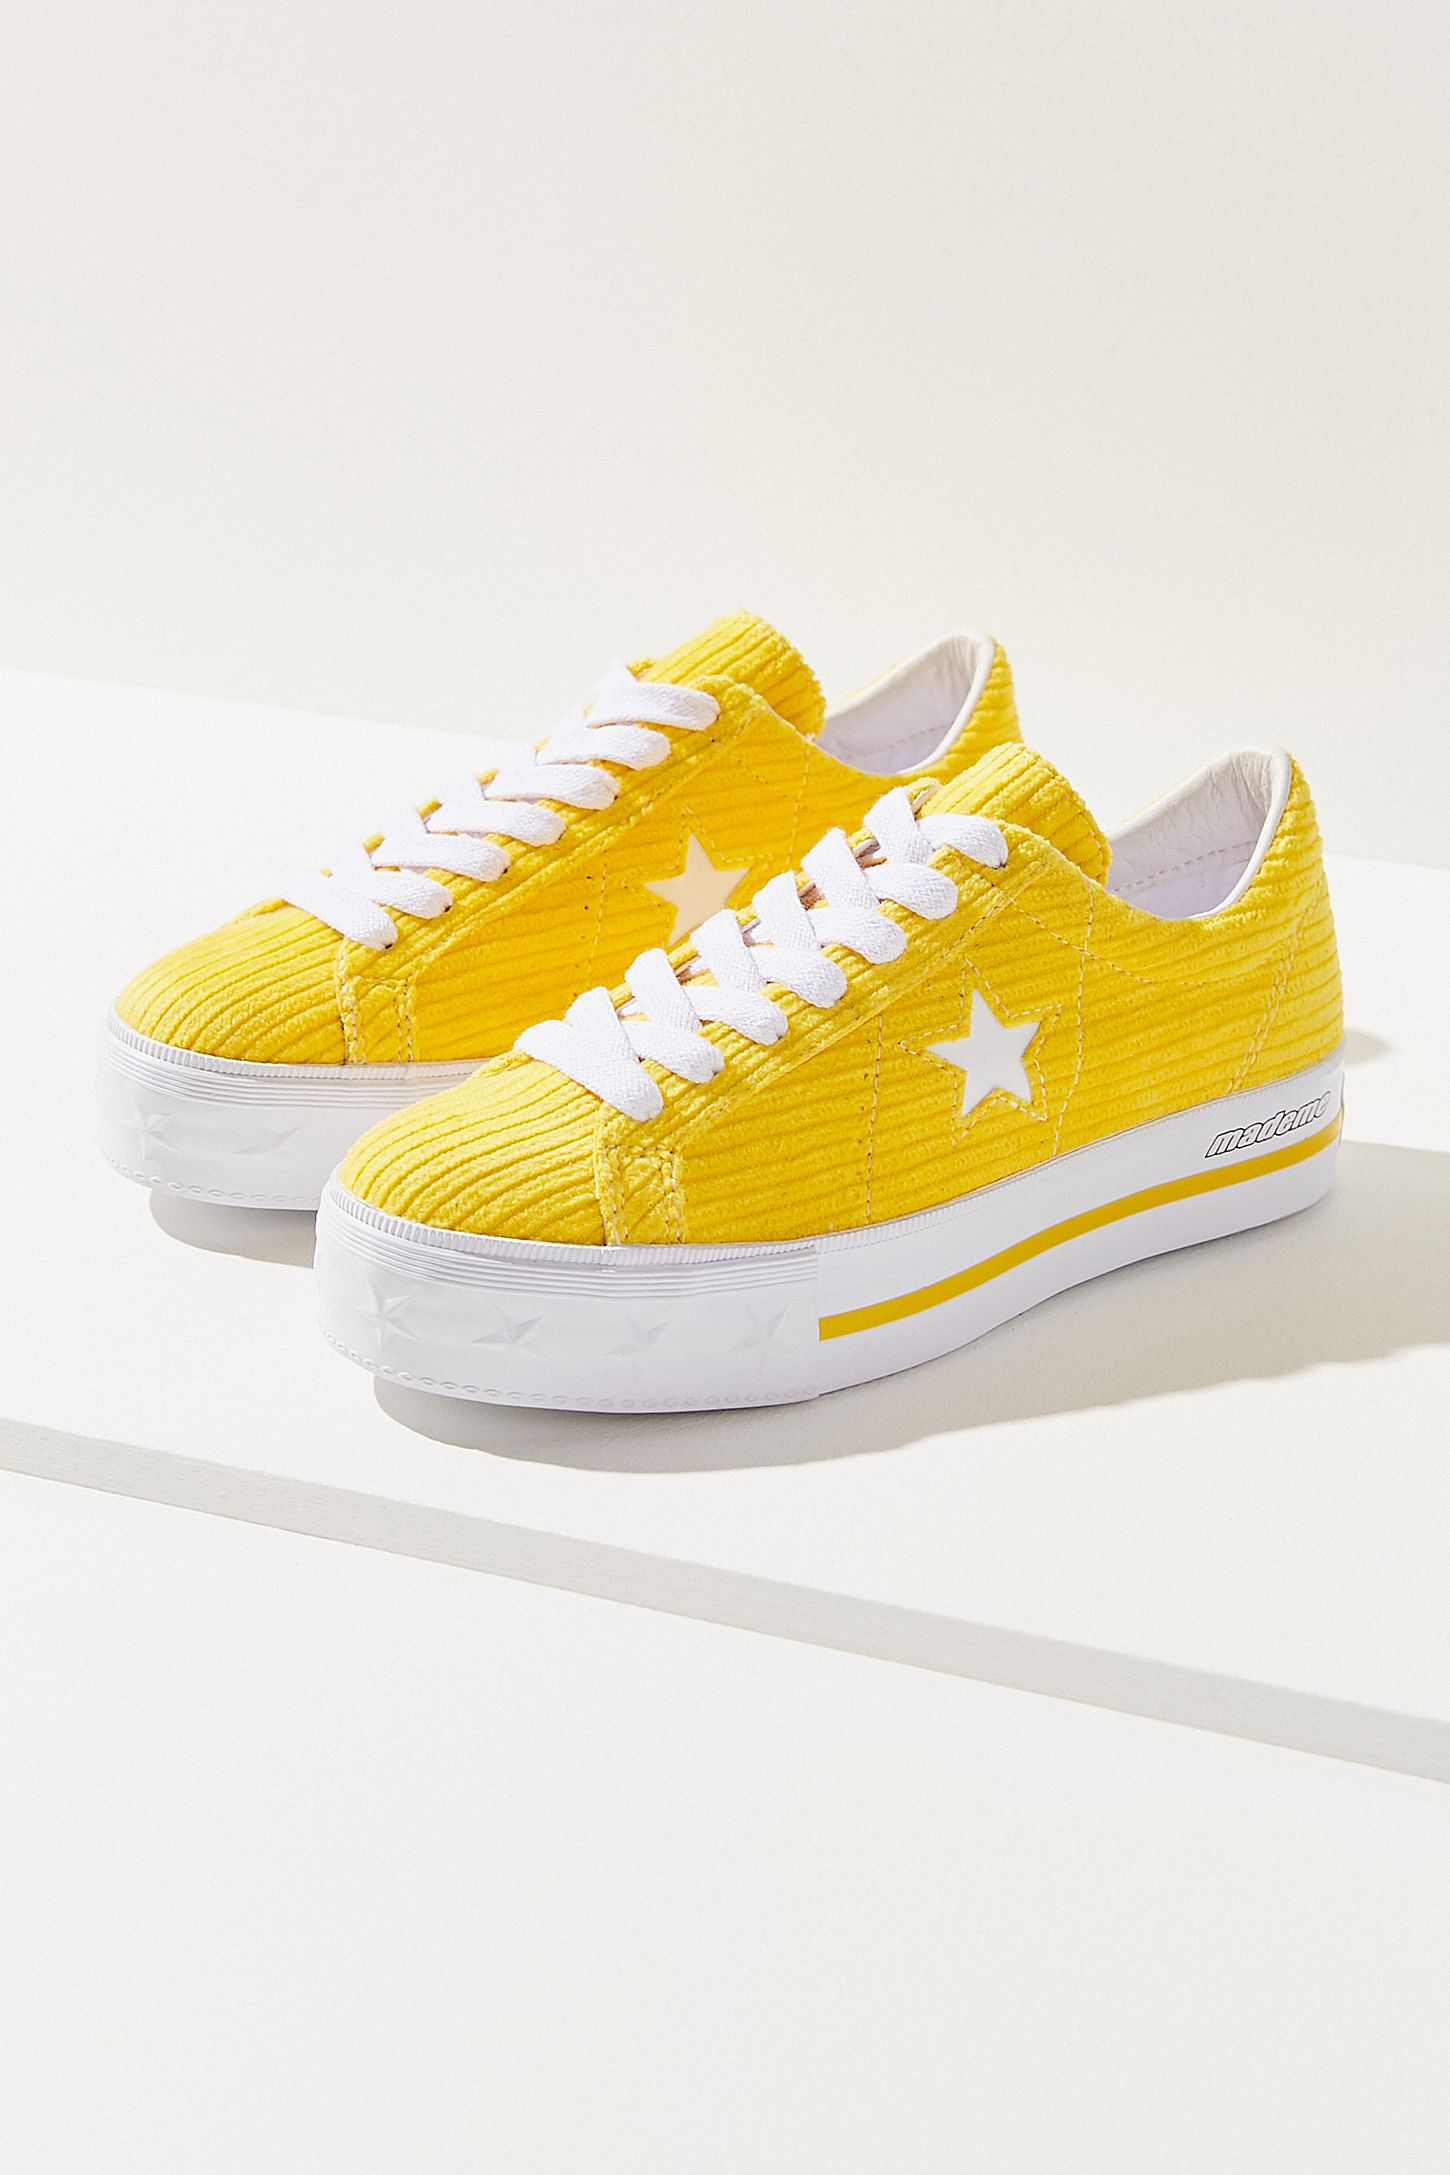 6e12d0a98cb Converse One Star X MadeMe Corduroy Platform Sneaker. Tap image to zoom.  Hover to zoom. Double Tap to Zoom